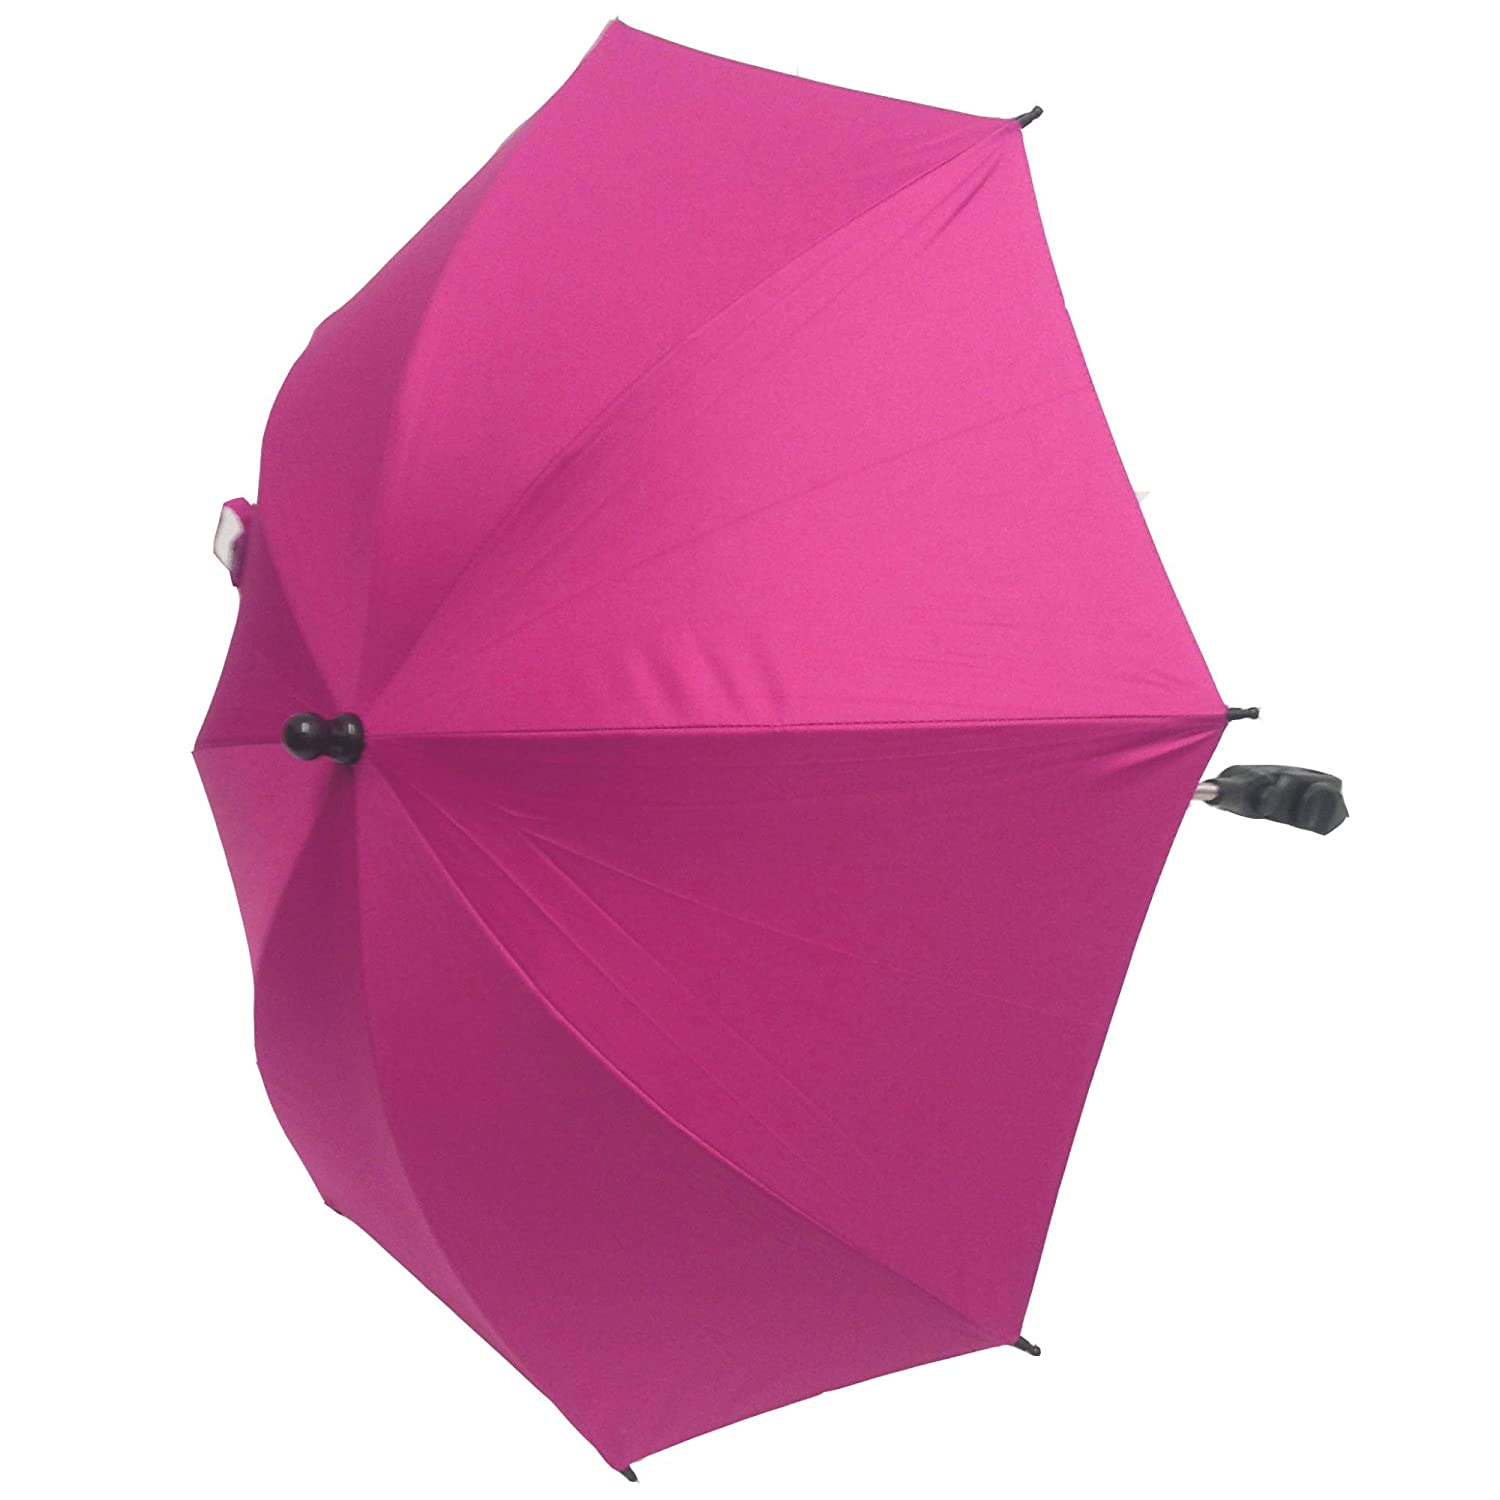 Baby Parasol for All Pushchairs/Buggies - Pink For-Your-Little-One